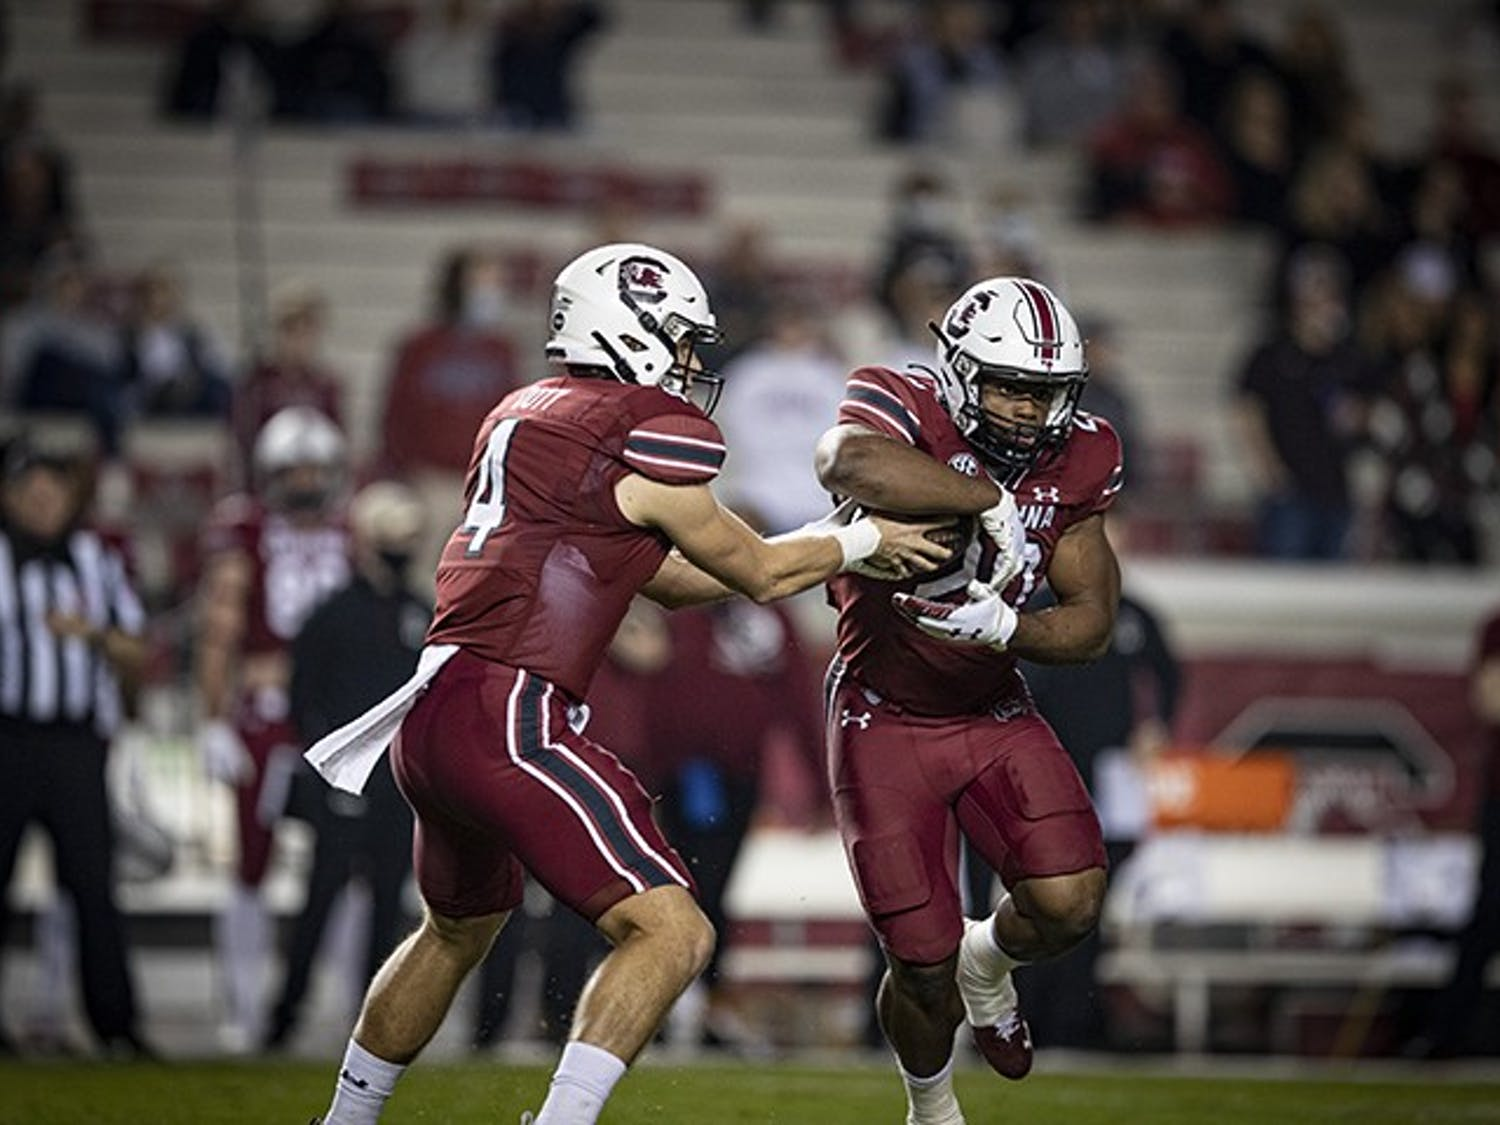 Freshman quarterback Luke Doty hands the ball off to sophomore running back Kevin Harris in South Carolina's loss to Georgia Saturday. The Gamecocks fell to a 2-7 record after the loss.